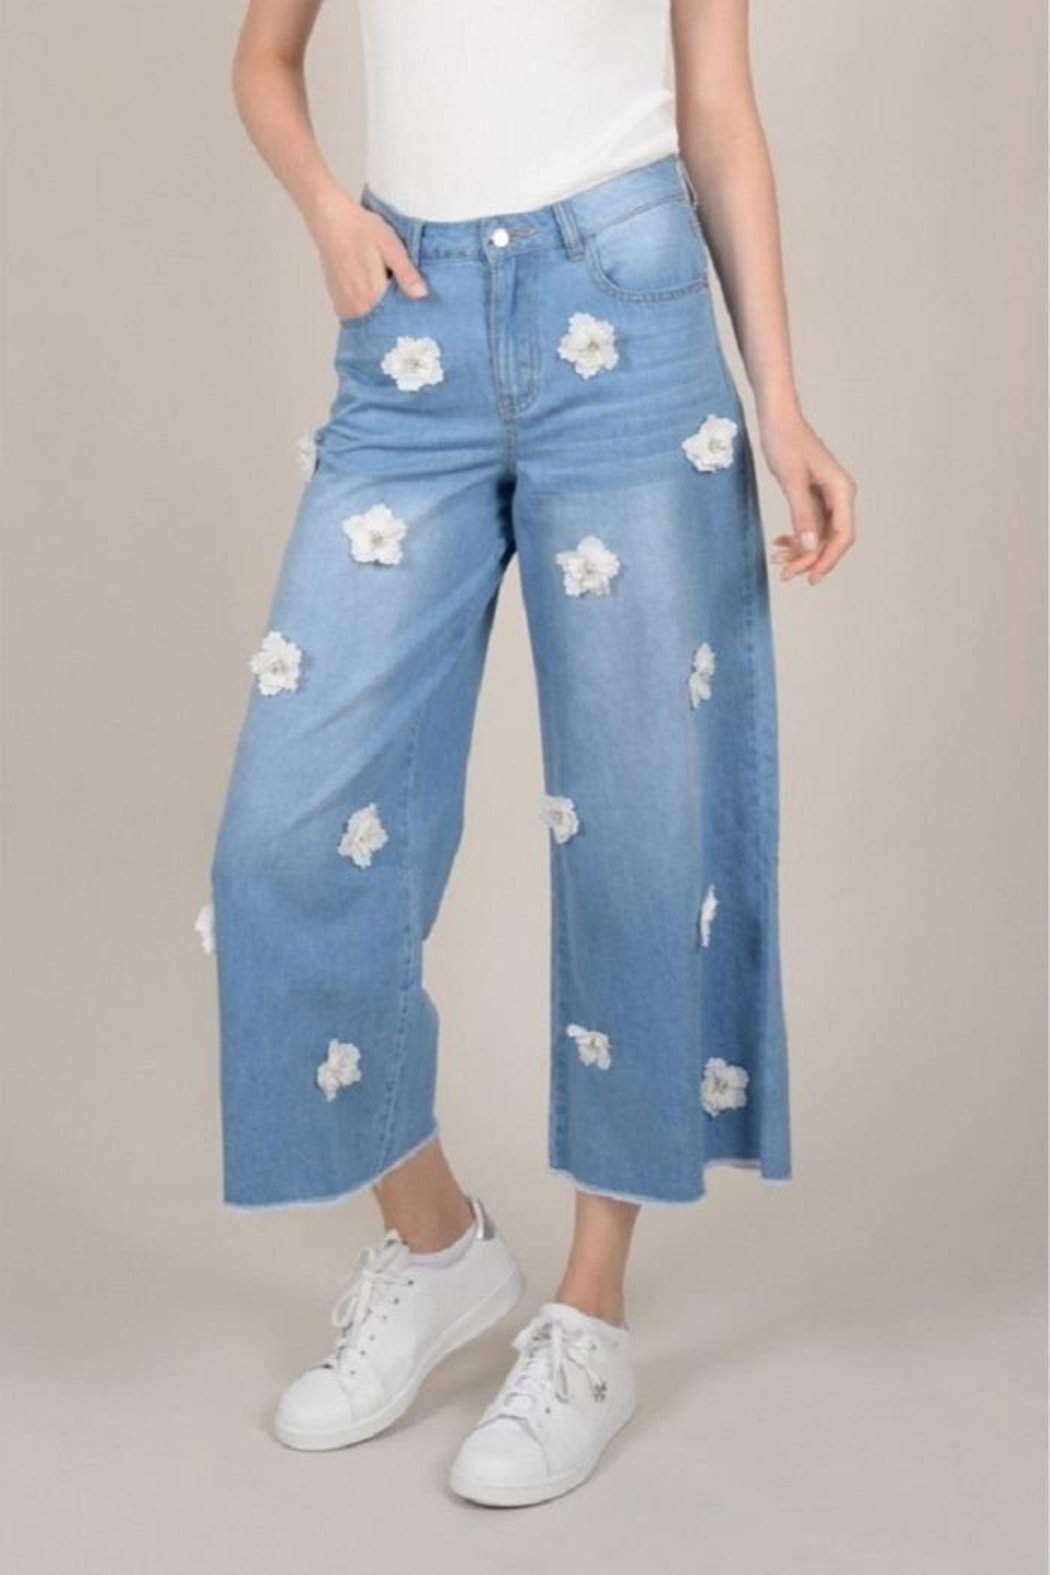 Molly Bracken Flower Cropped Jeans - Front Cropped Image